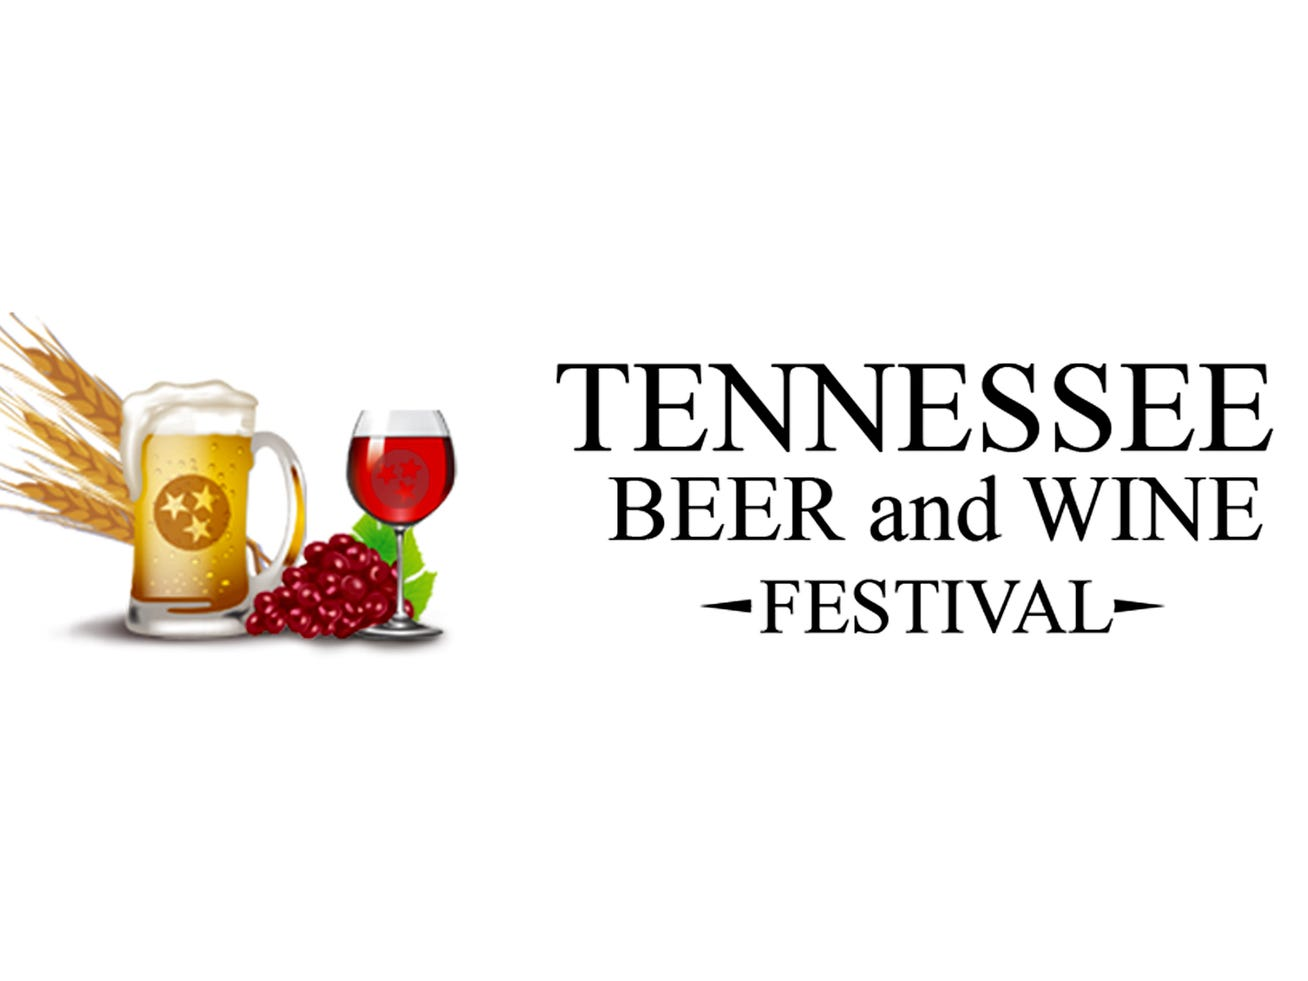 OCT. 20